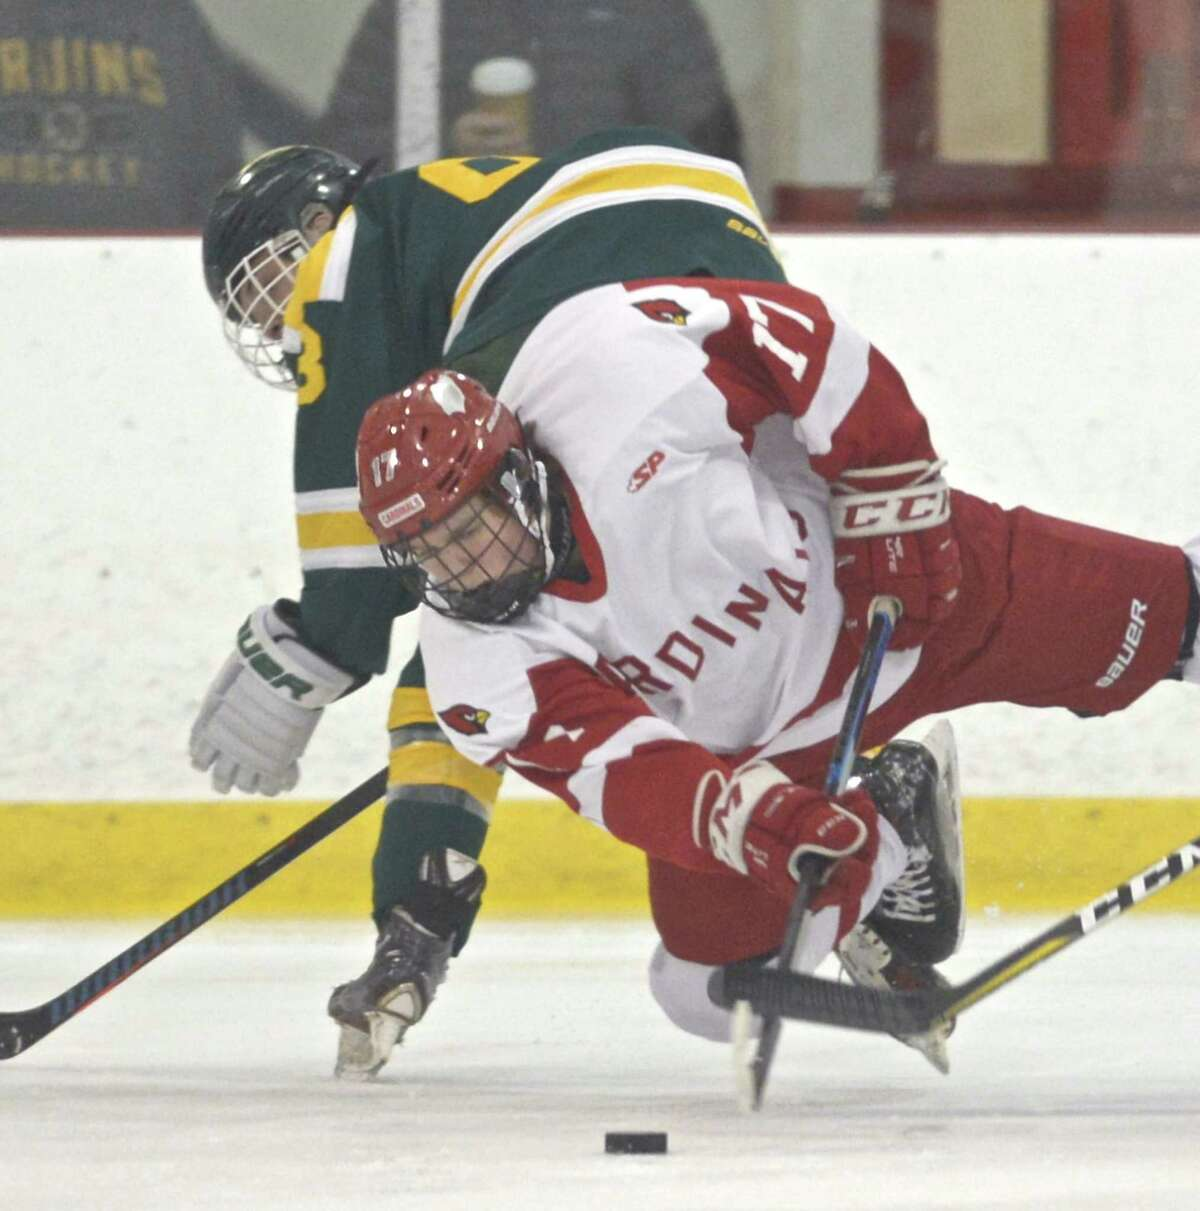 Greenwich's Thatcher Danielson (17) gets airborne as he goes for the puck in the boys ice hockey game between Hamden and Greenwich high schools, Tuesday night, January 2, 2019, at Dorothy Hamill Rink, Greenwich, Conn..